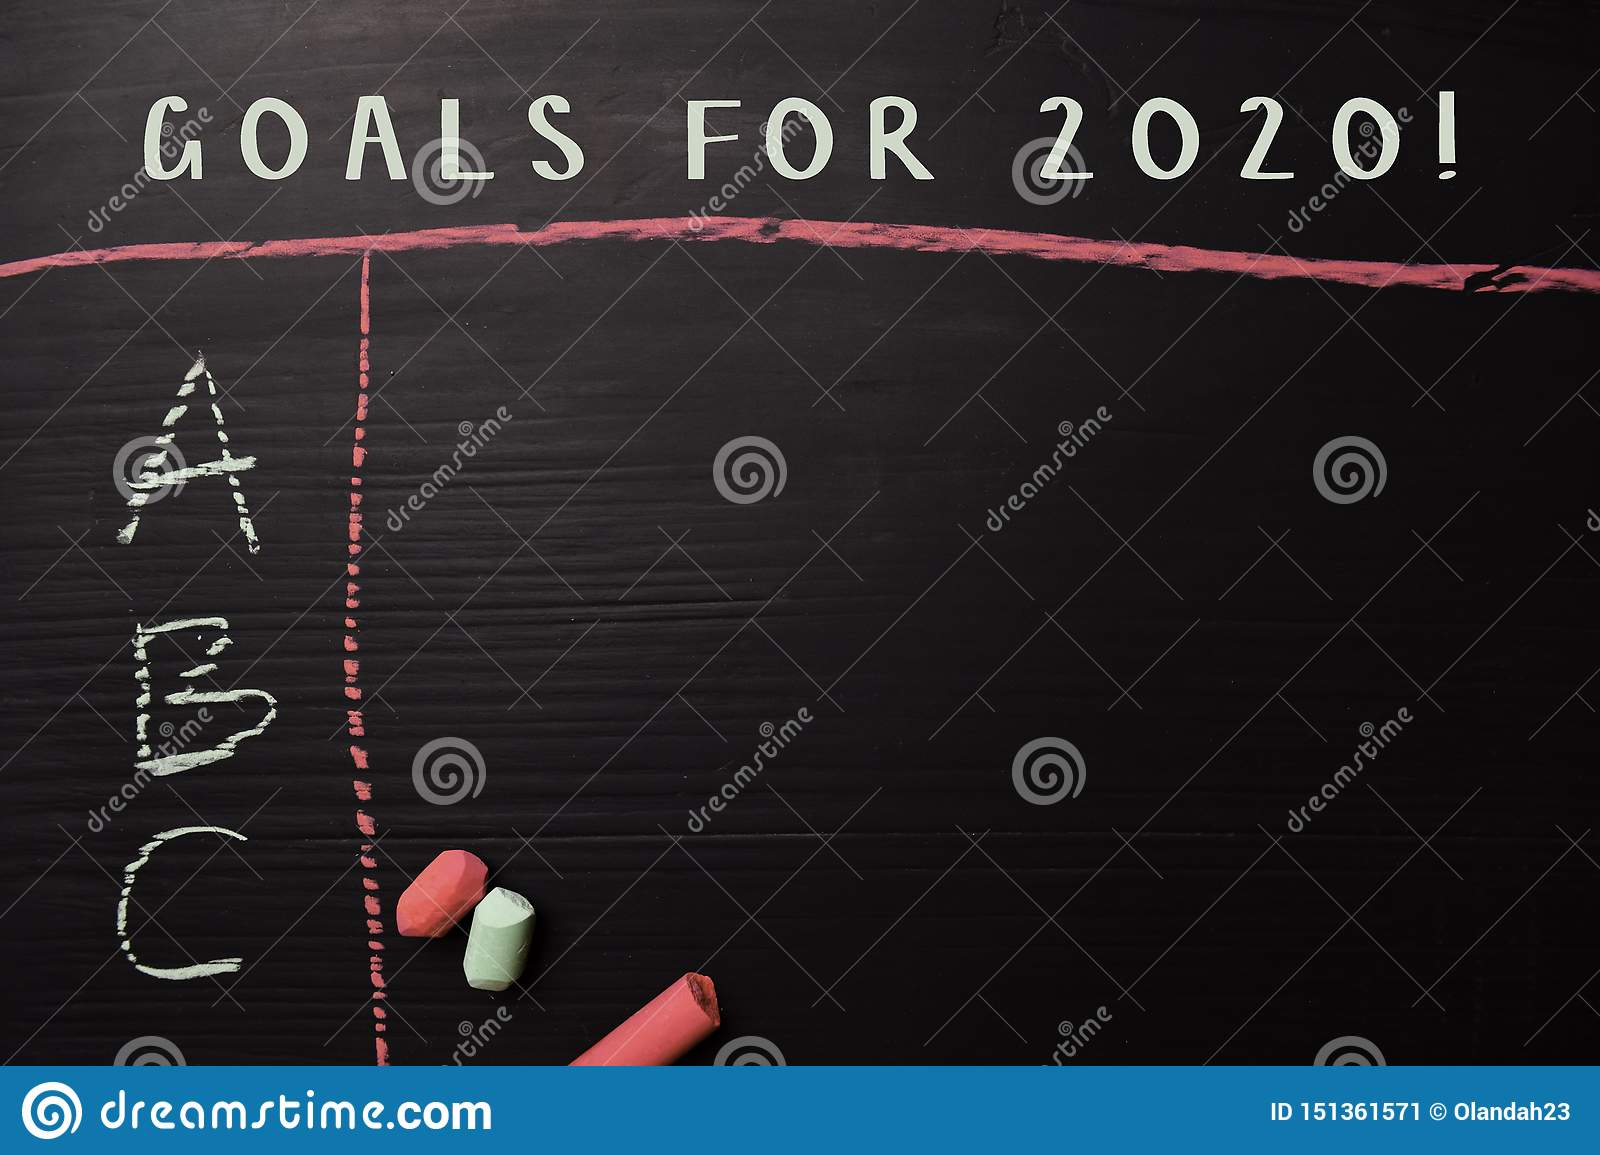 Goals For 2020! written with color chalk. Supported by an additional services. Blackboard concept